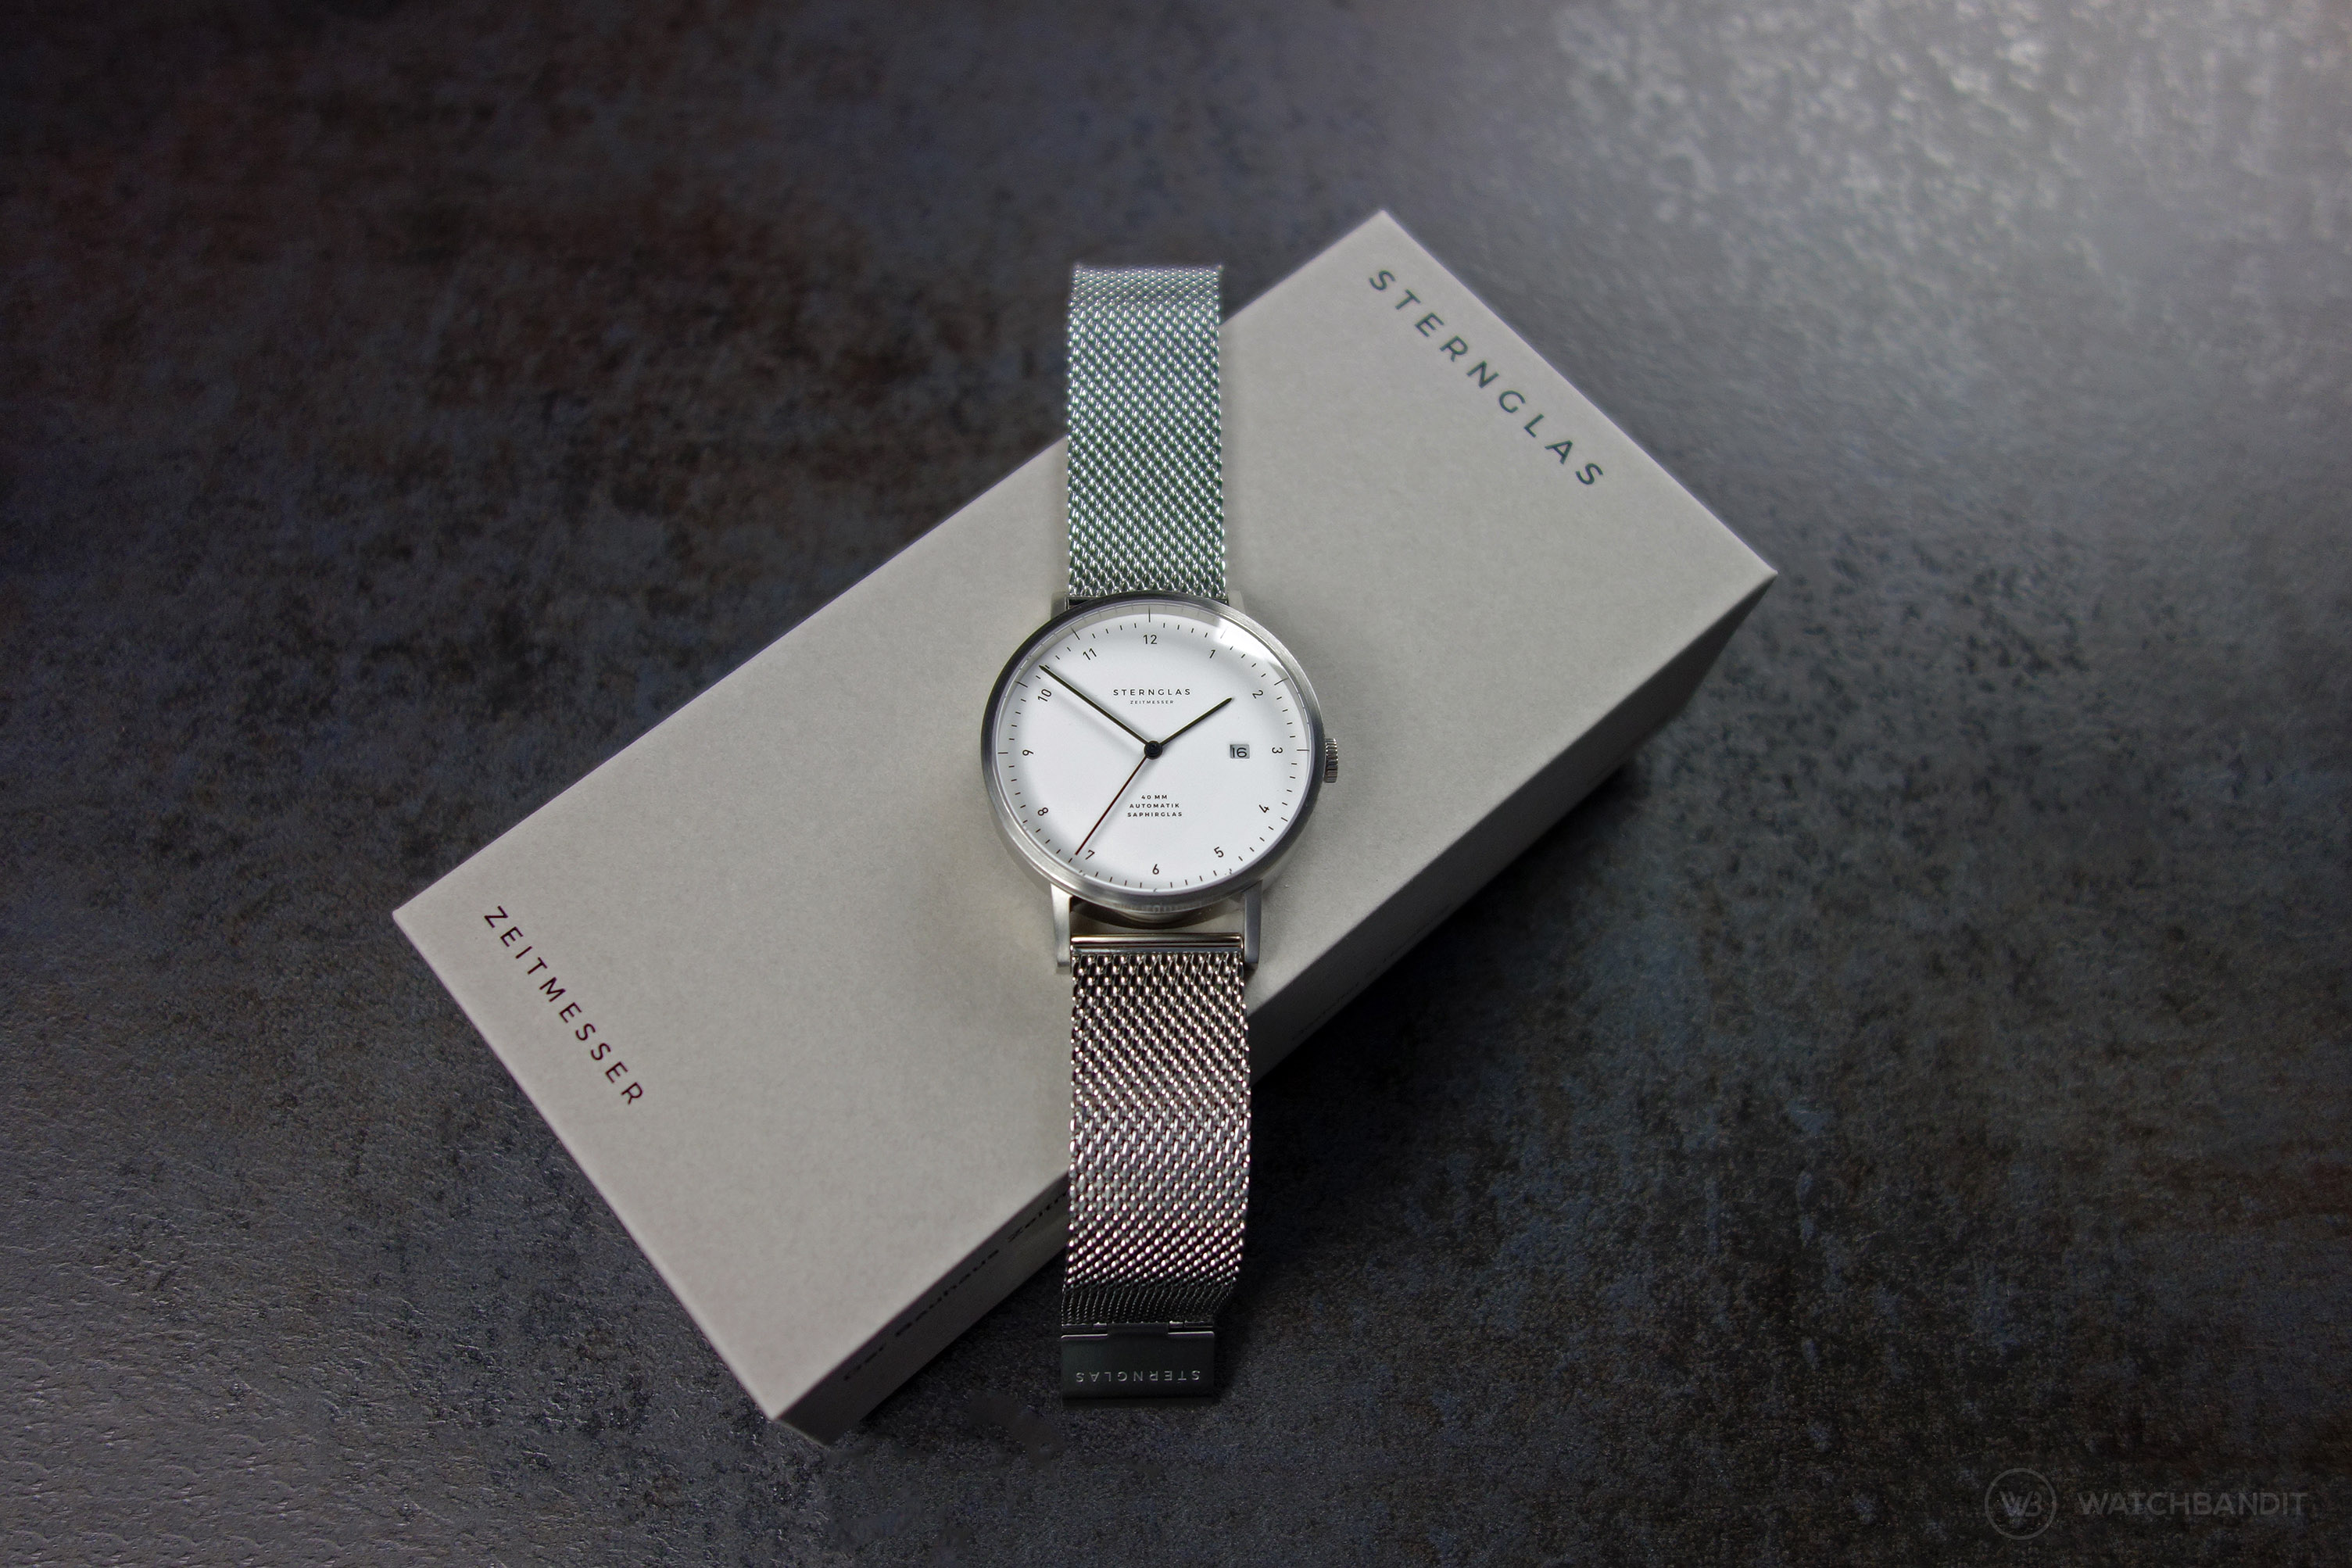 Sternglas Zirkel watch and box